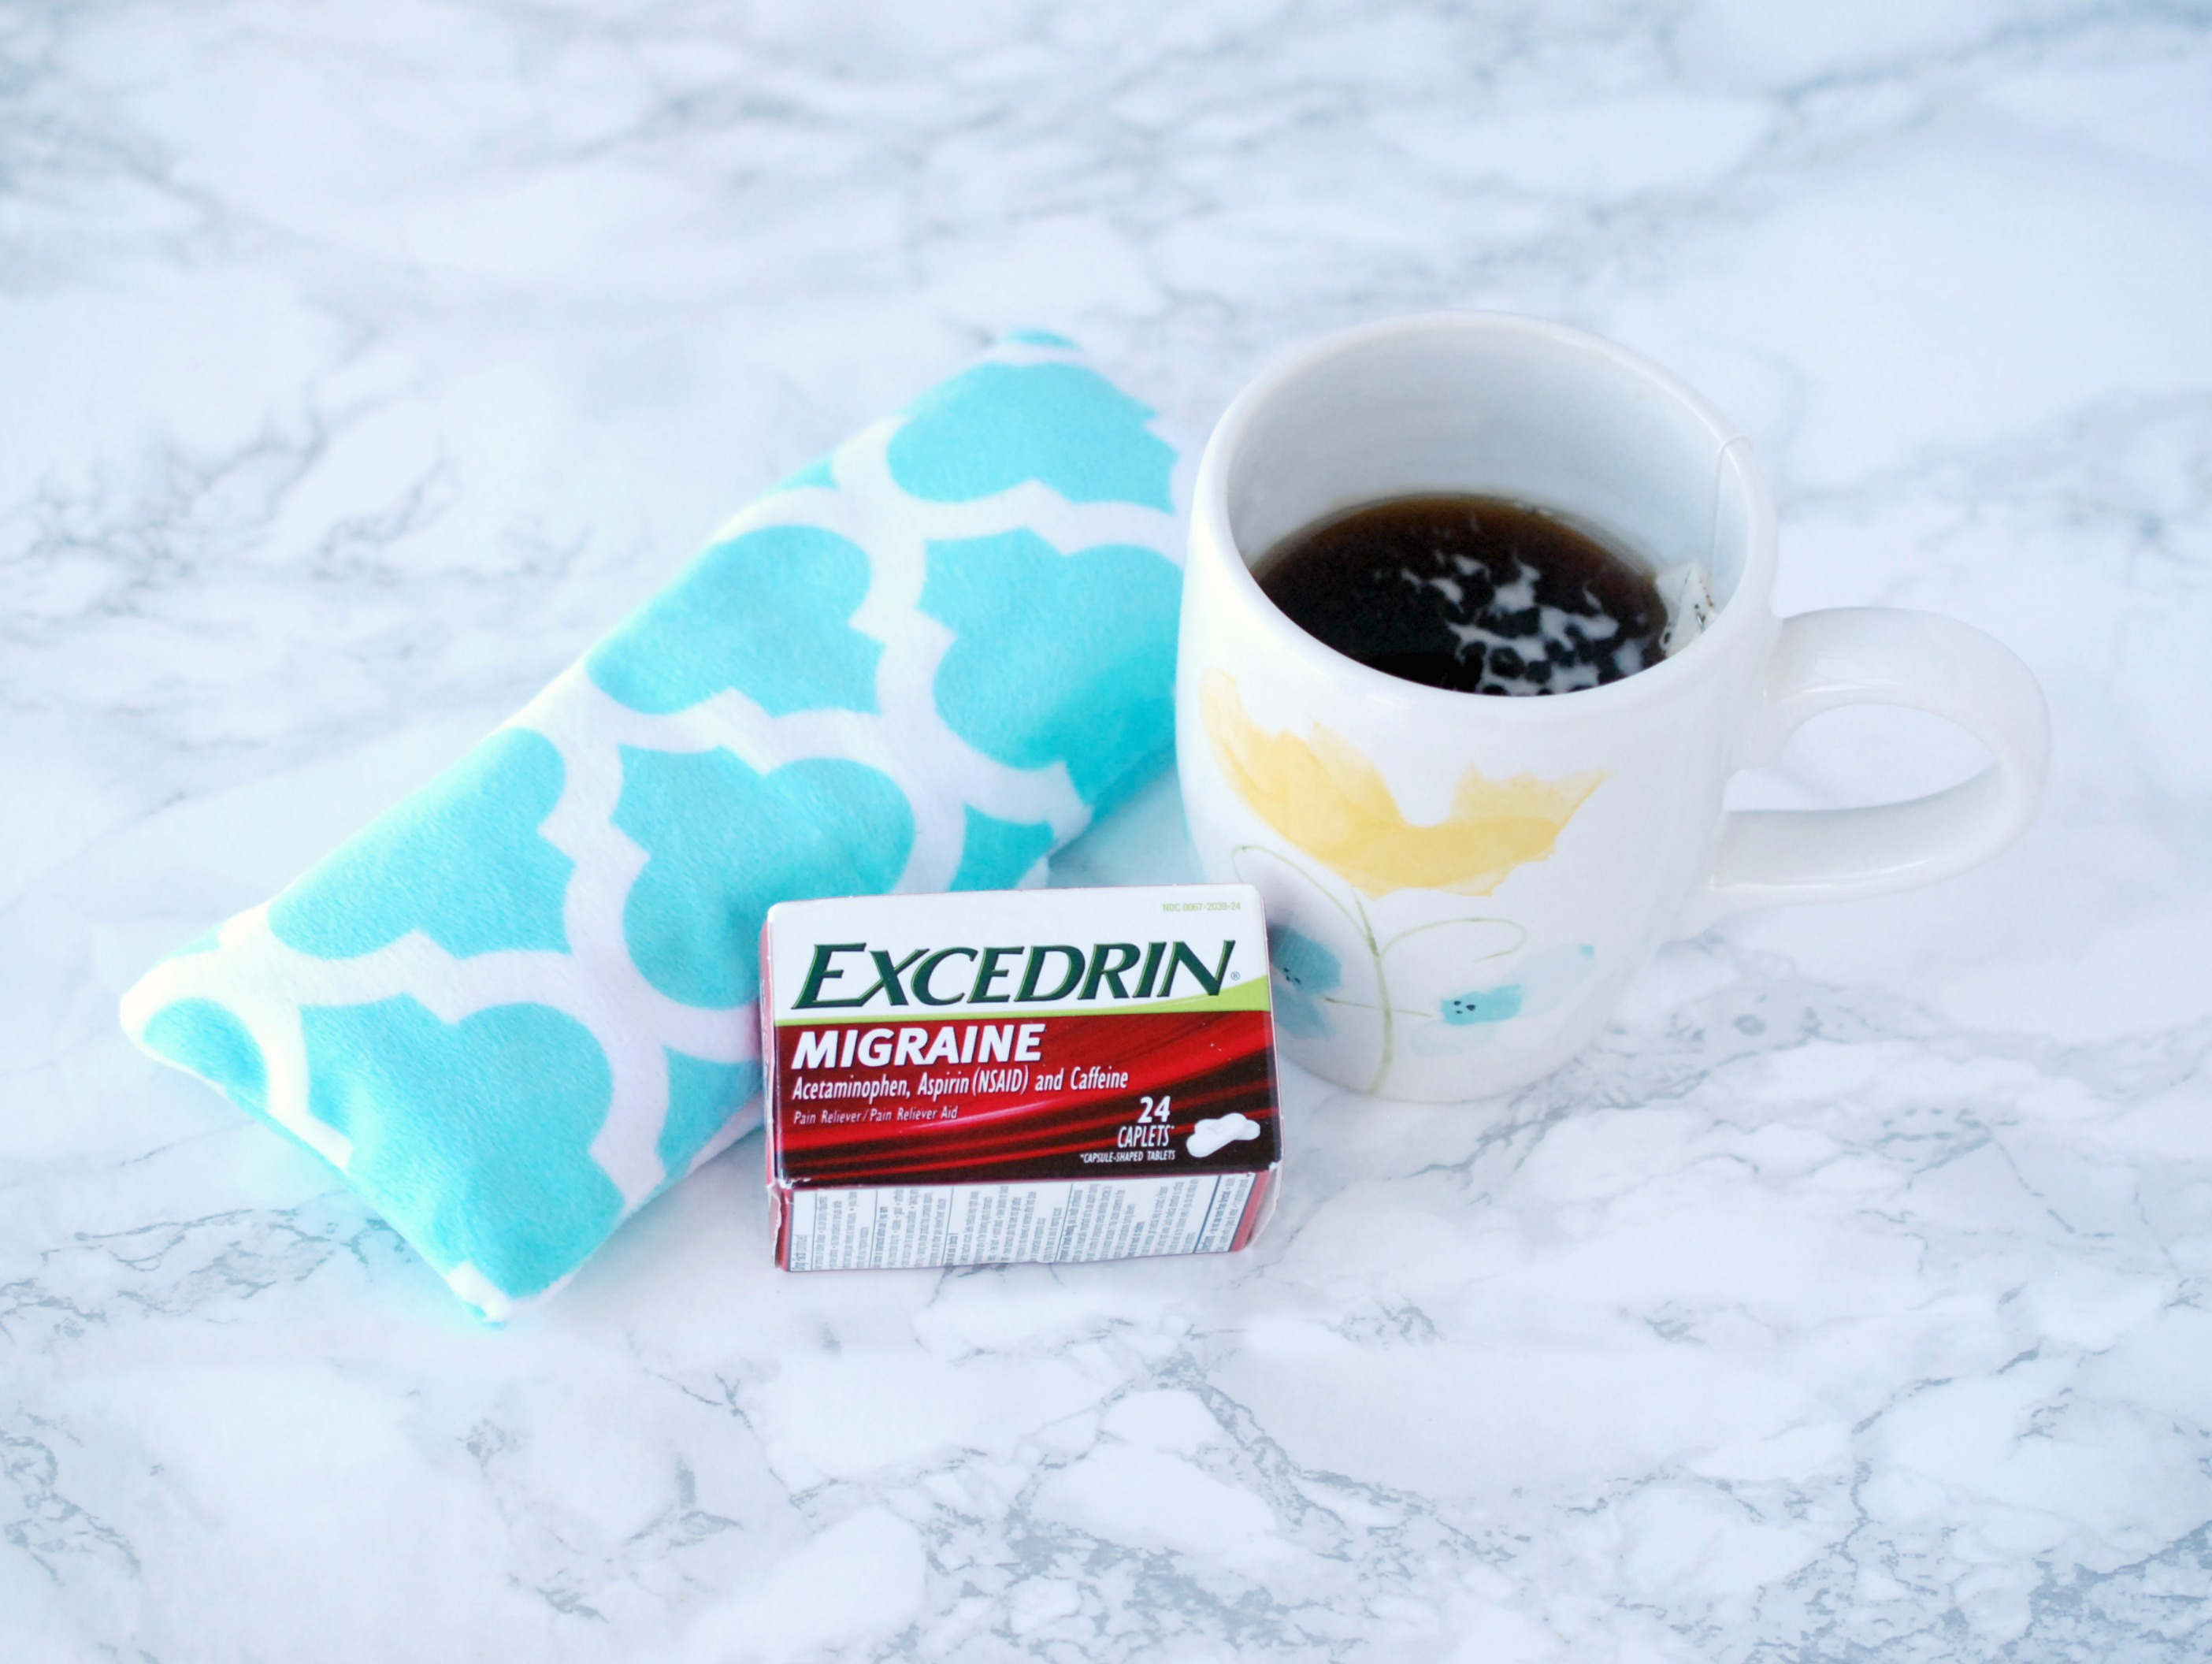 Learn how to make a flaxseed, lavender and chamomile eye pillow to help combat nasty headaches. #MoreMomentsWithExcedrin #ad